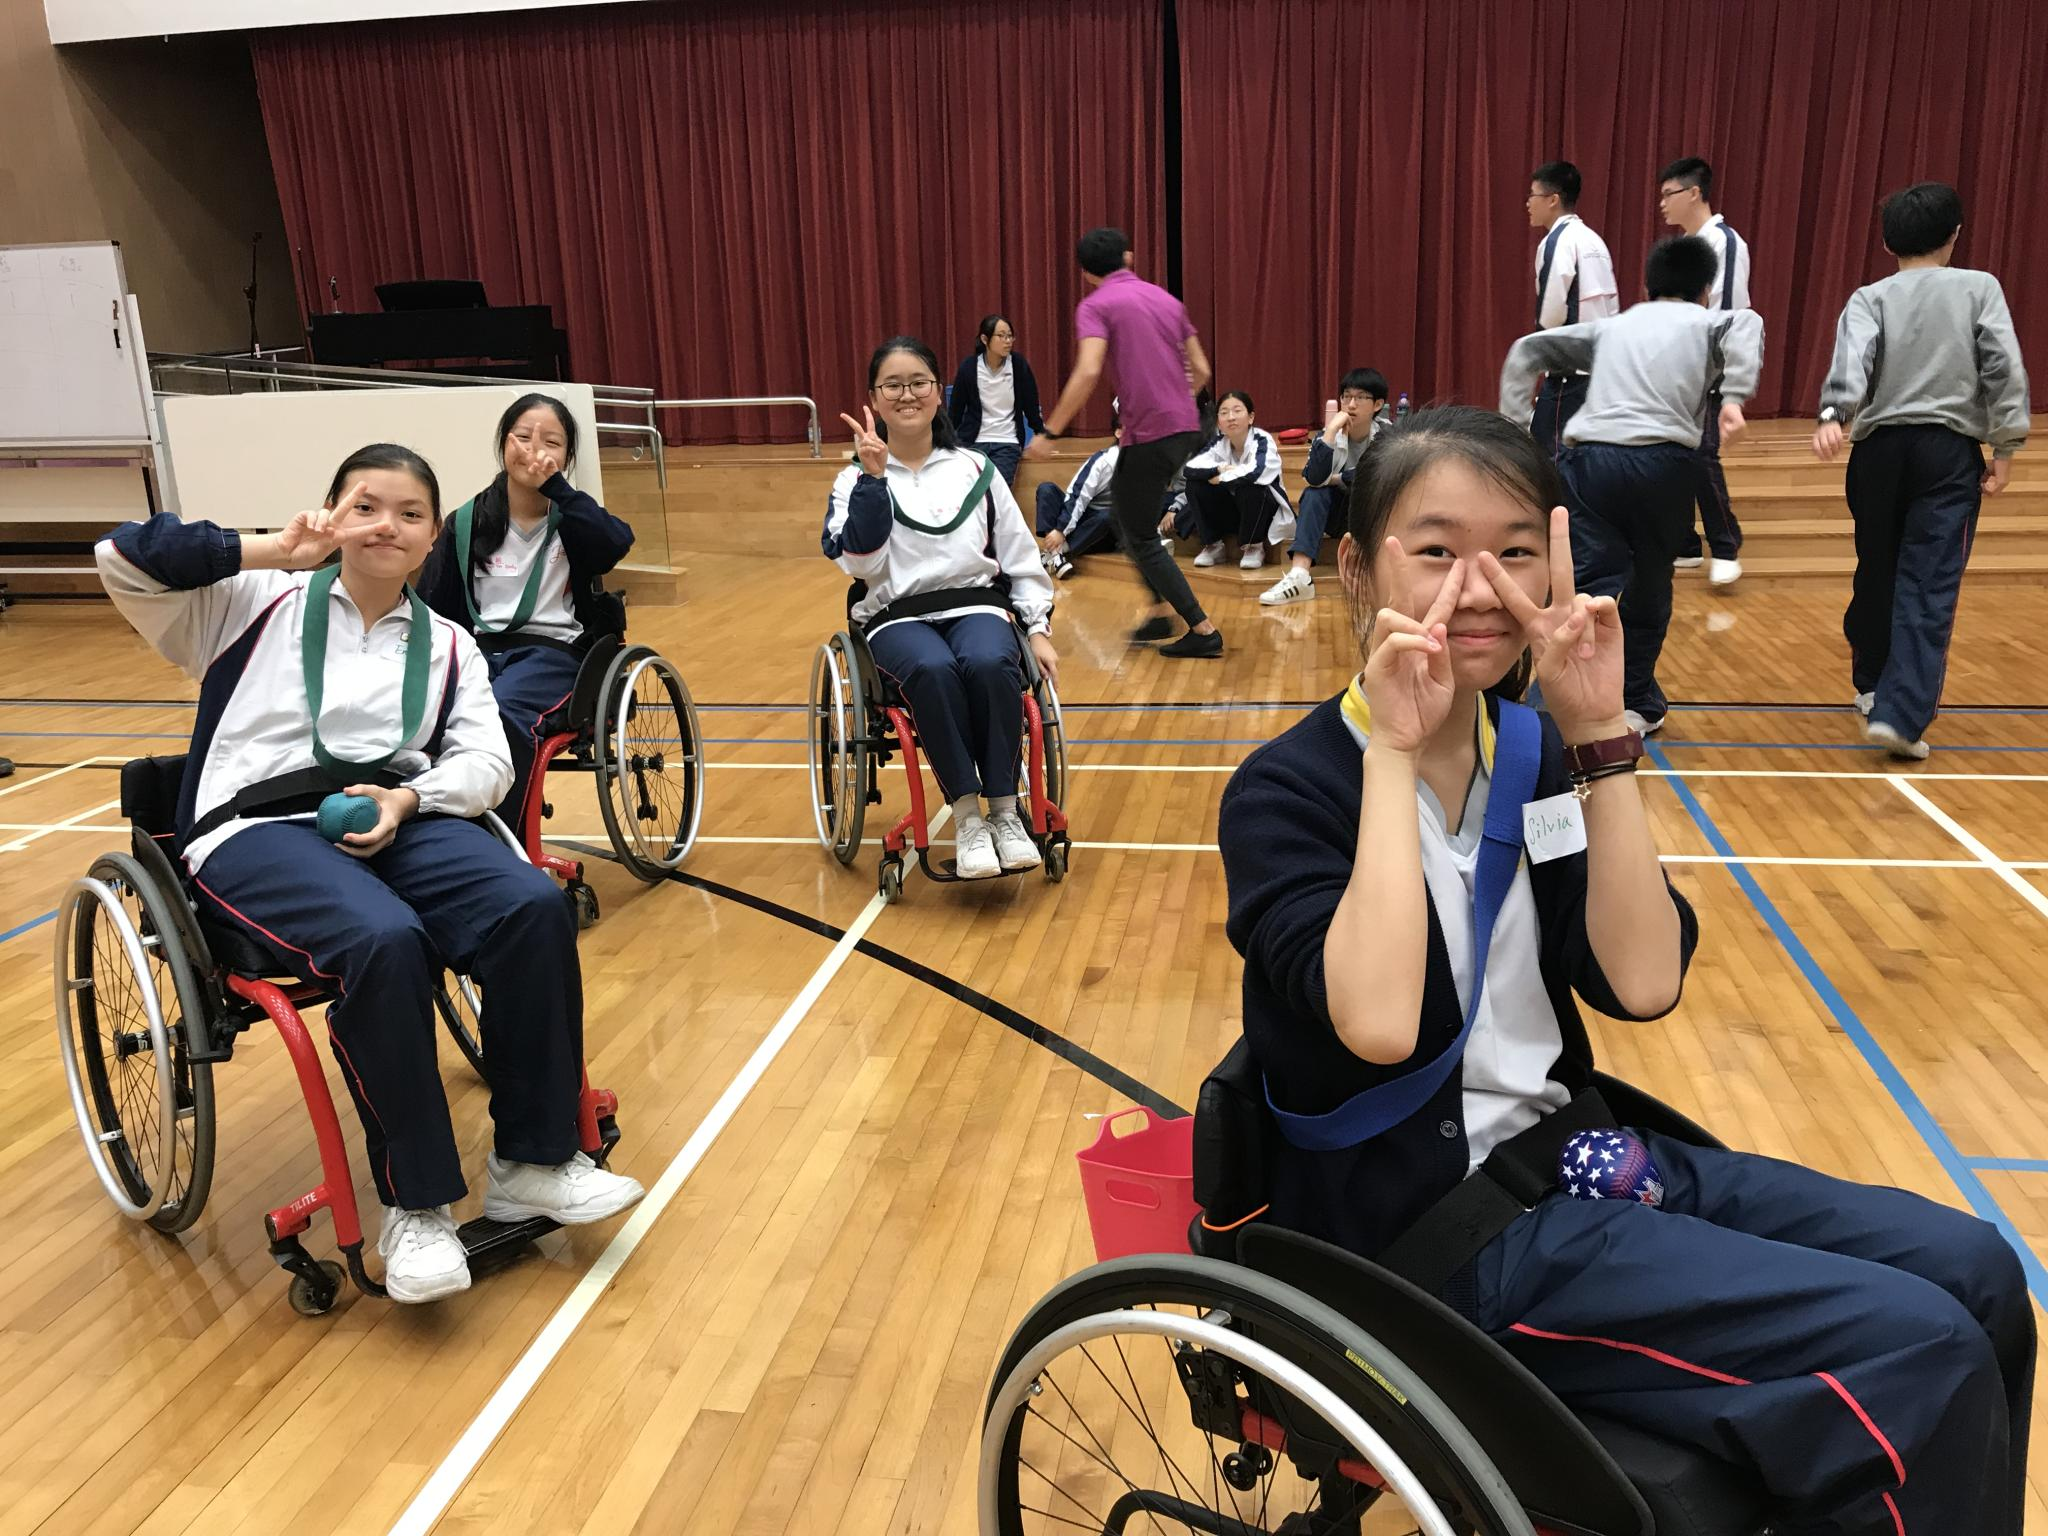 Teams needed to compete on wheelchairs in one of the team building activities.